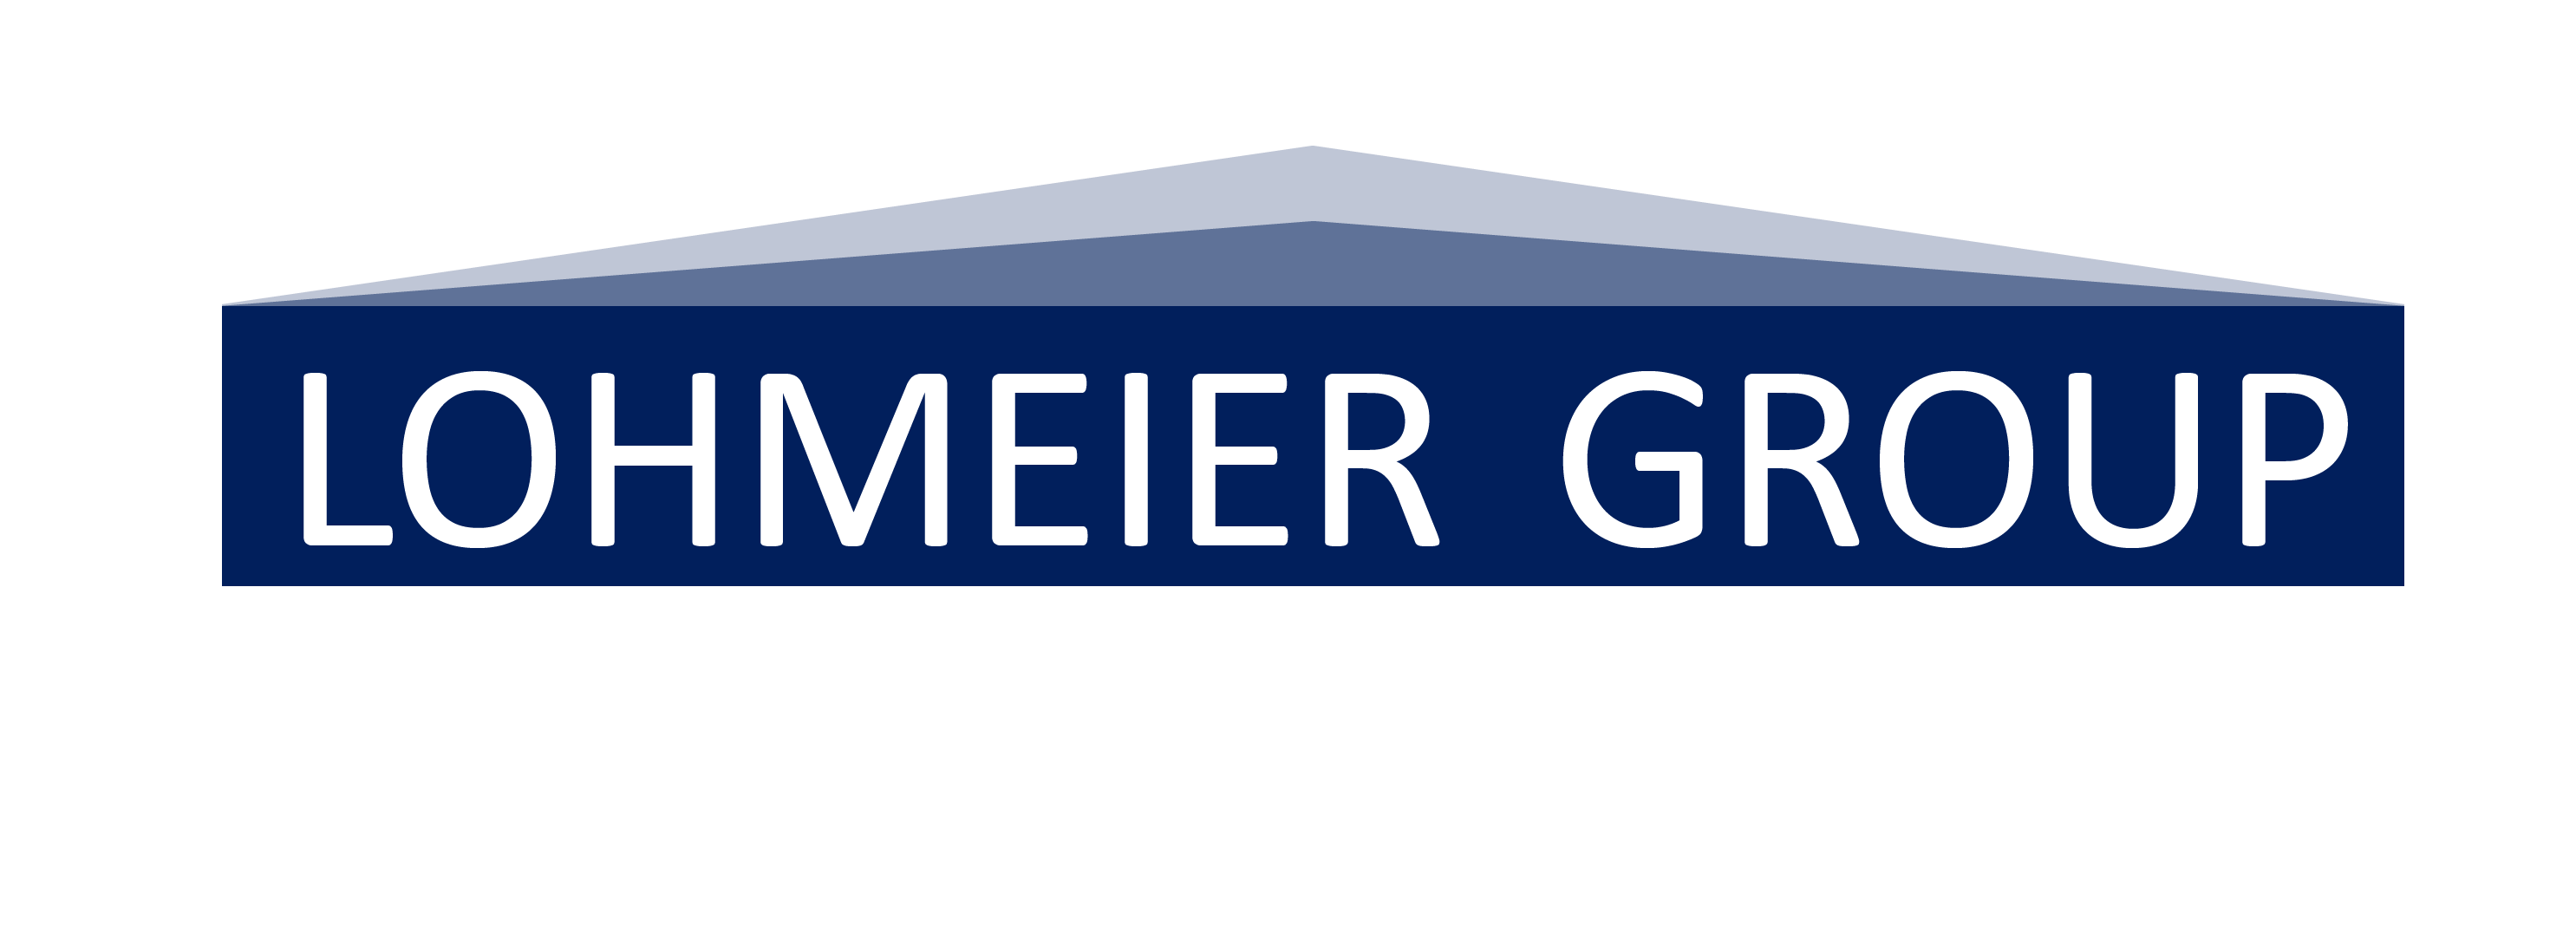 Lohmeier Group